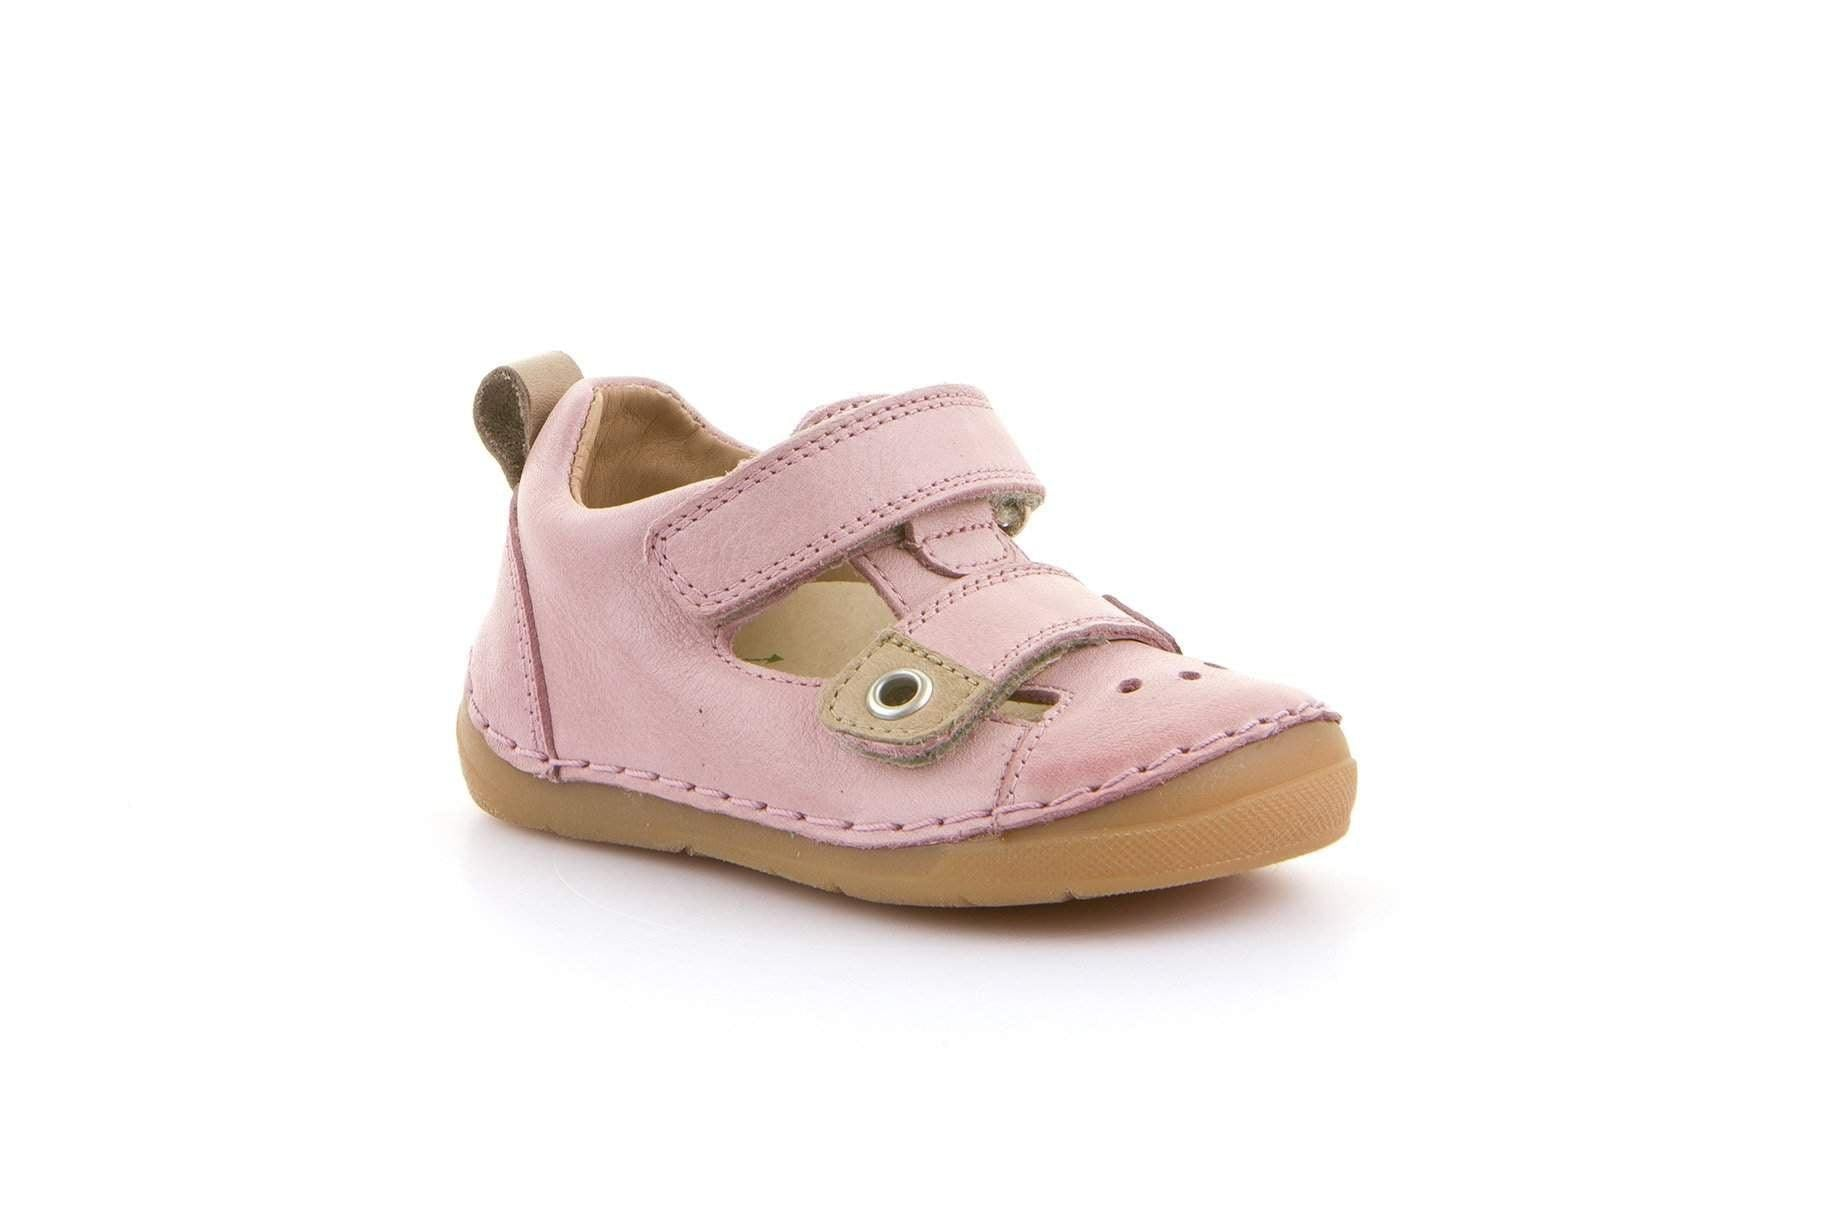 Froddo/G2150090-7/Pink/Girls  Leather Sandals /Toddler - ShoeKid.ca